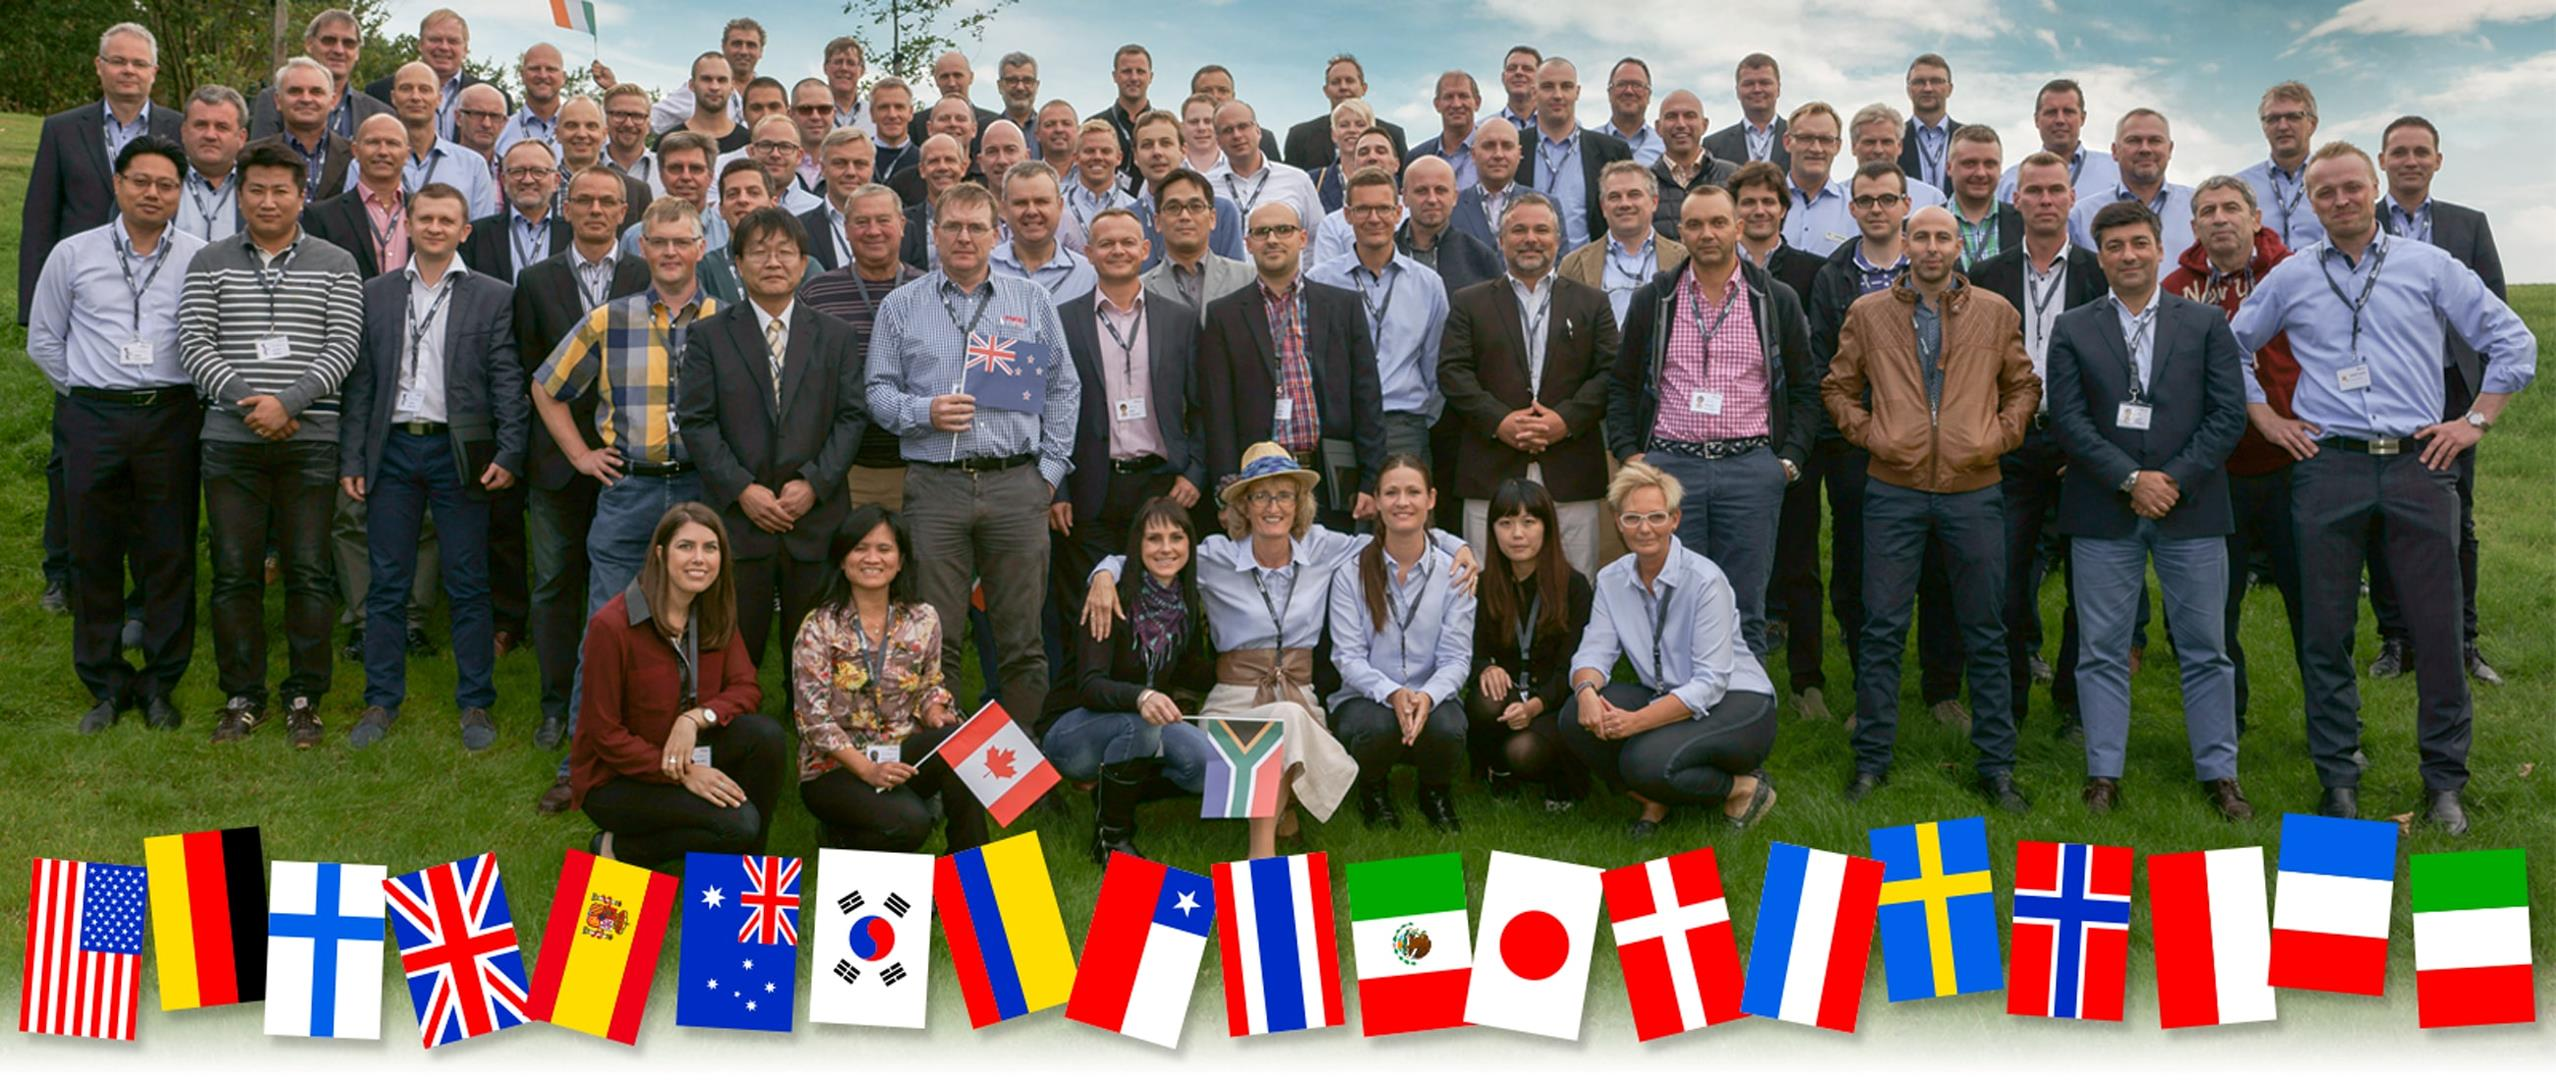 Bramidan Family picture with worldwide distributors and their flags